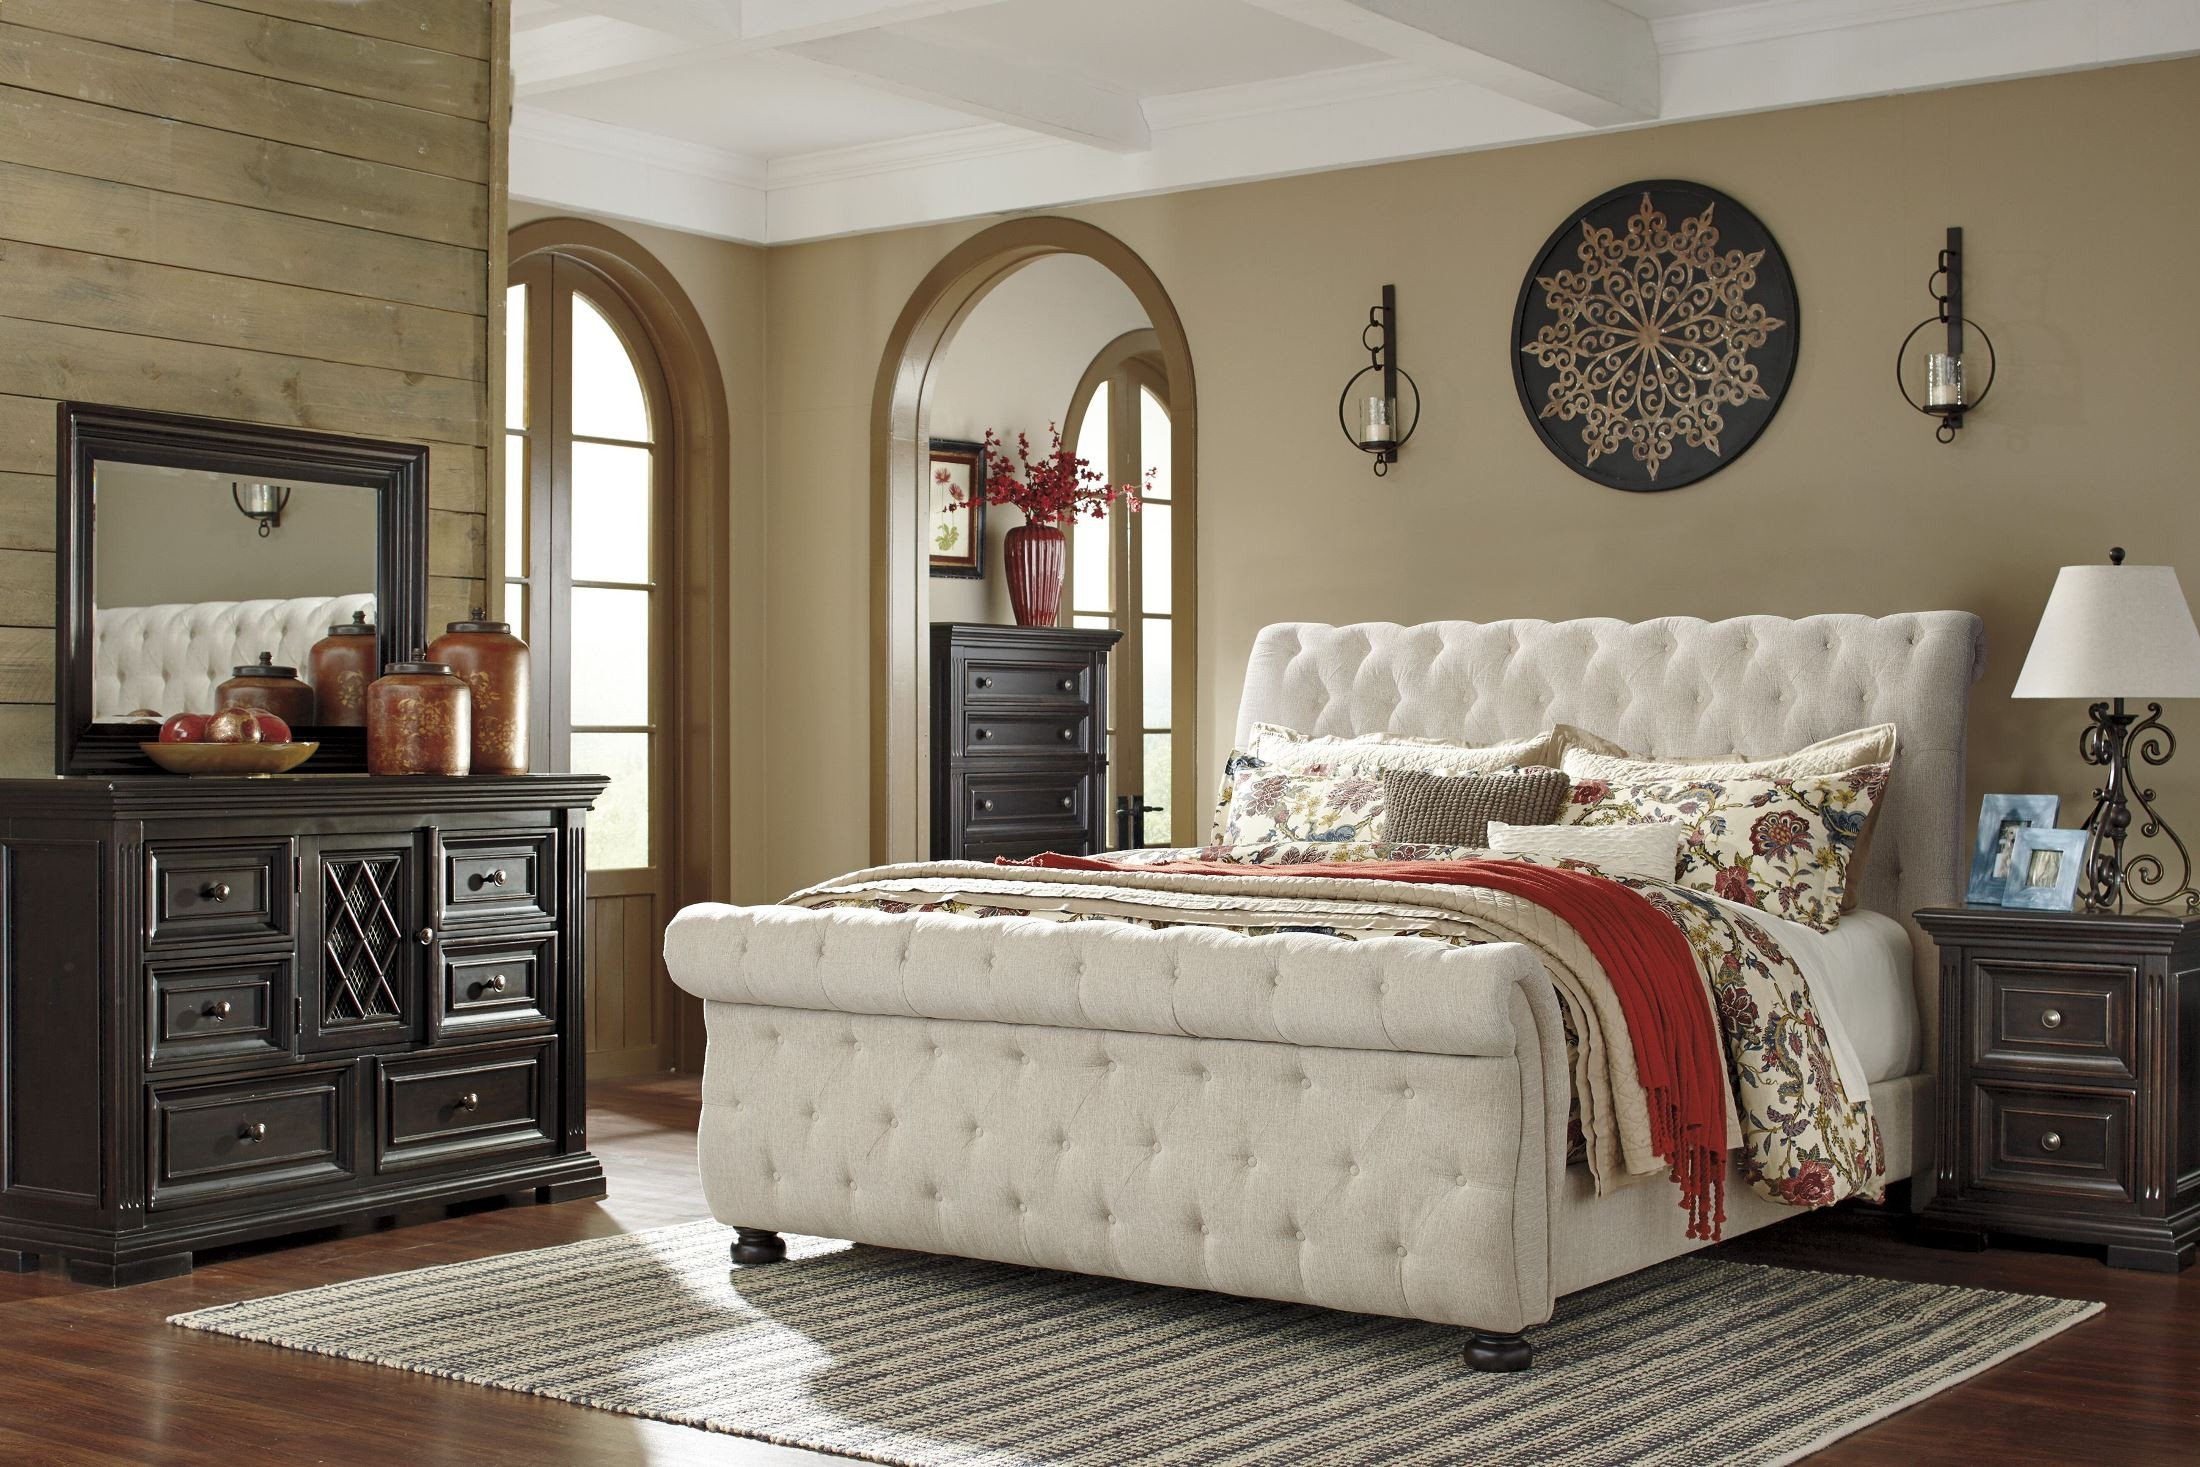 King Upholstered Sleigh Bed. 1681856. 1681857